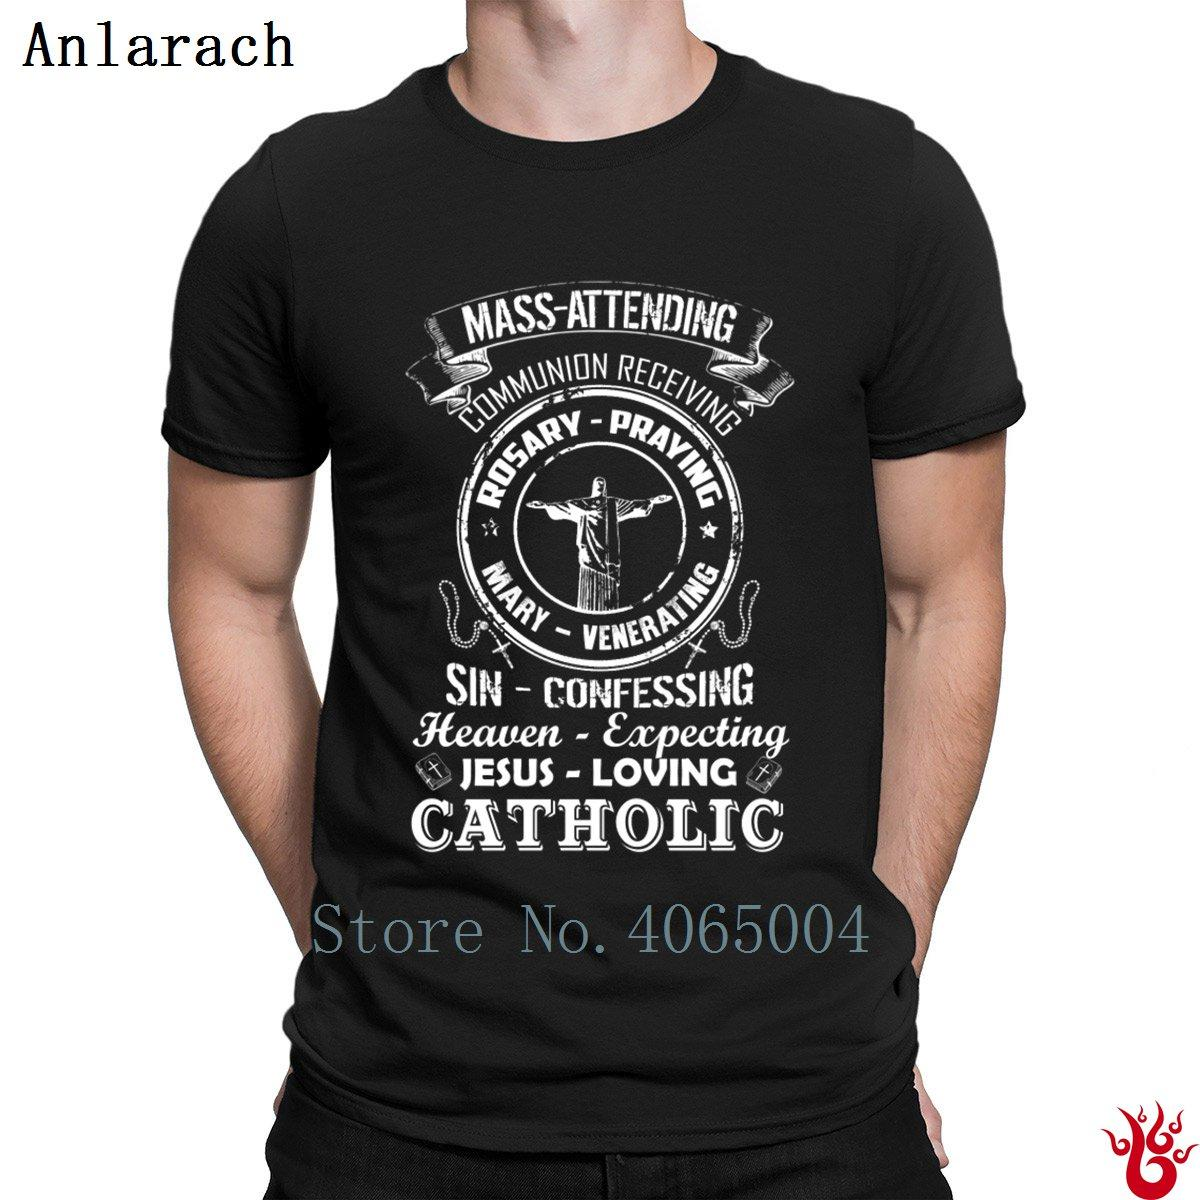 3b52c9fa Catholic Tshirts Trend Funny Letters Sunlight T Shirt For Men Summer Style  Print Pop Top Tee S 3xl Short Sleeve Awesome T Shirts For Sale White T  Shirts ...